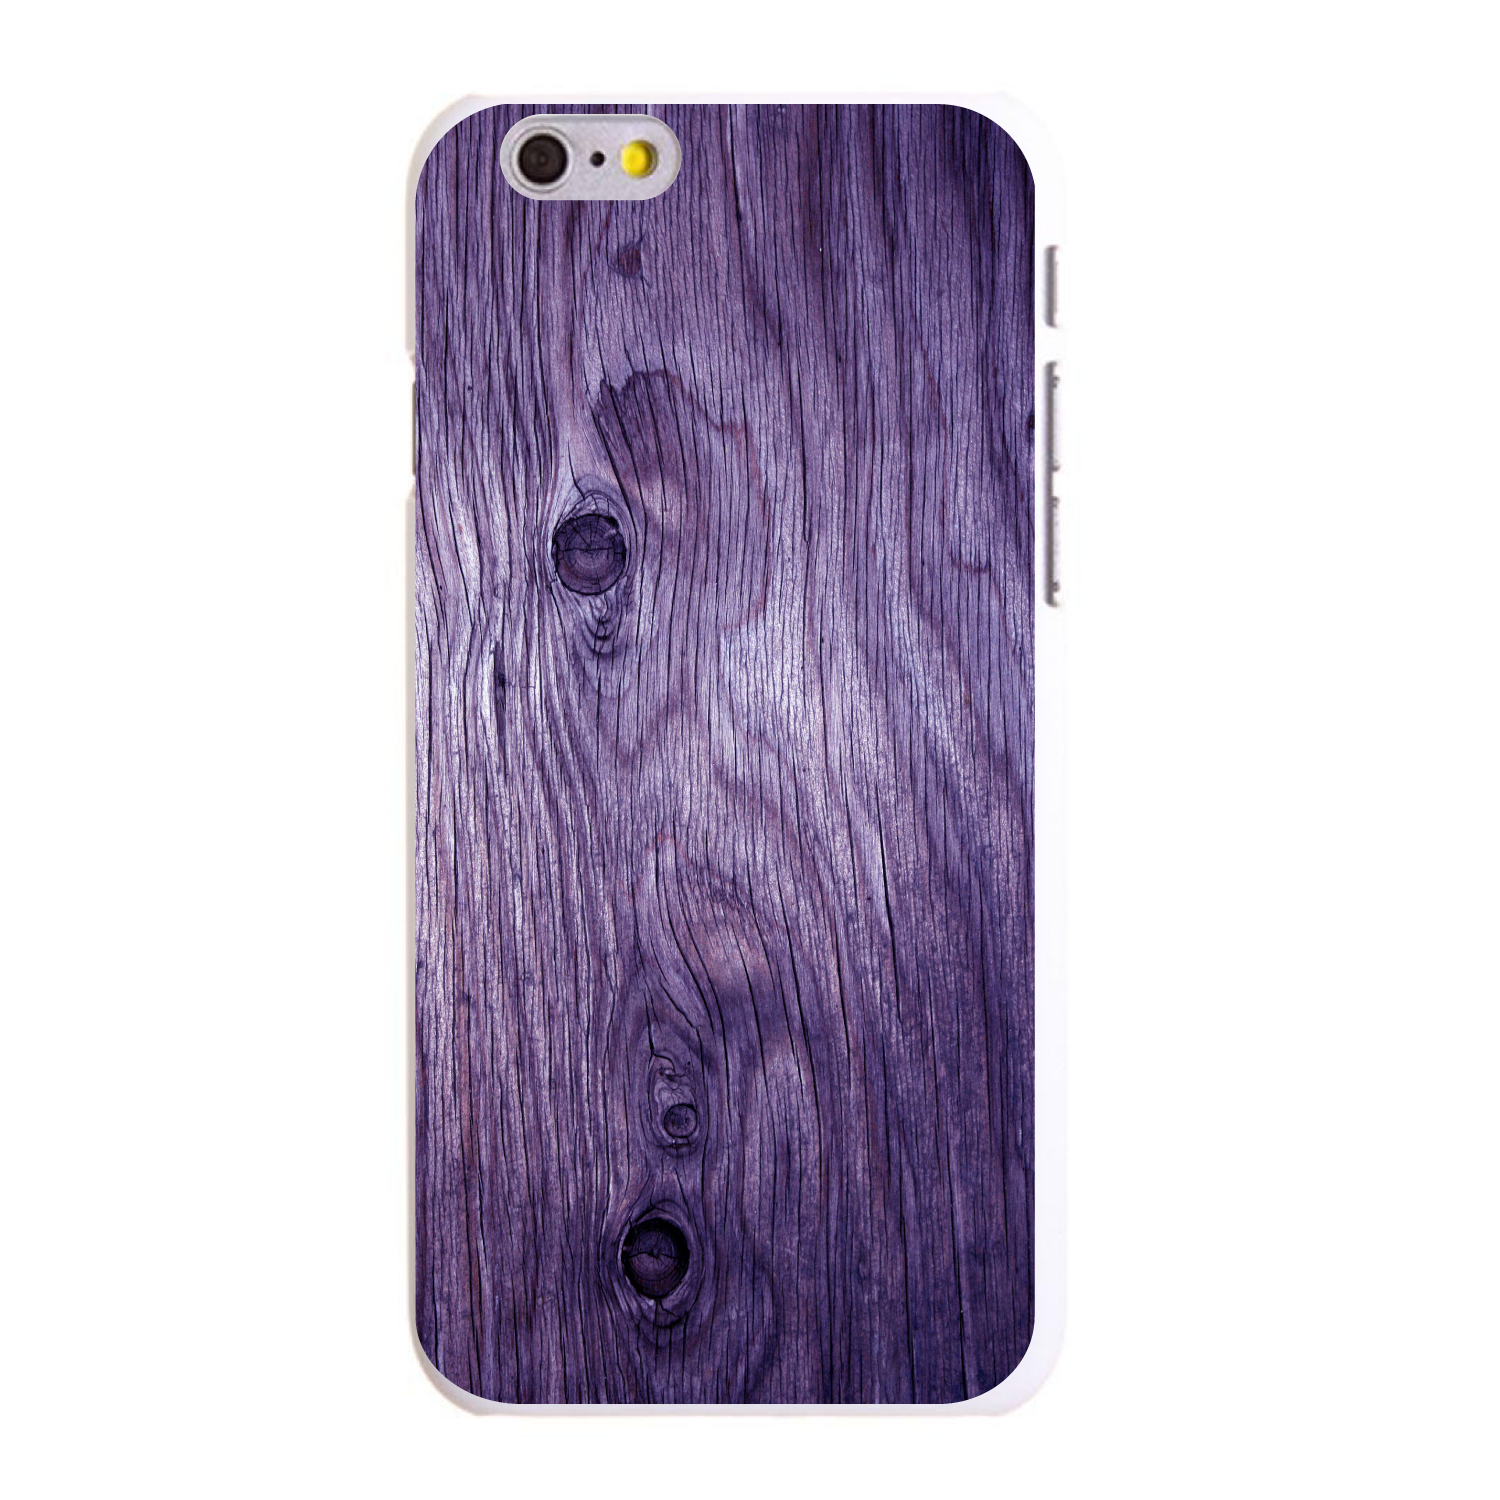 "CUSTOM White Hard Plastic Snap-On Case for Apple iPhone 6 / 6S (4.7"" Screen) - Purple Weathered Wood Grain"